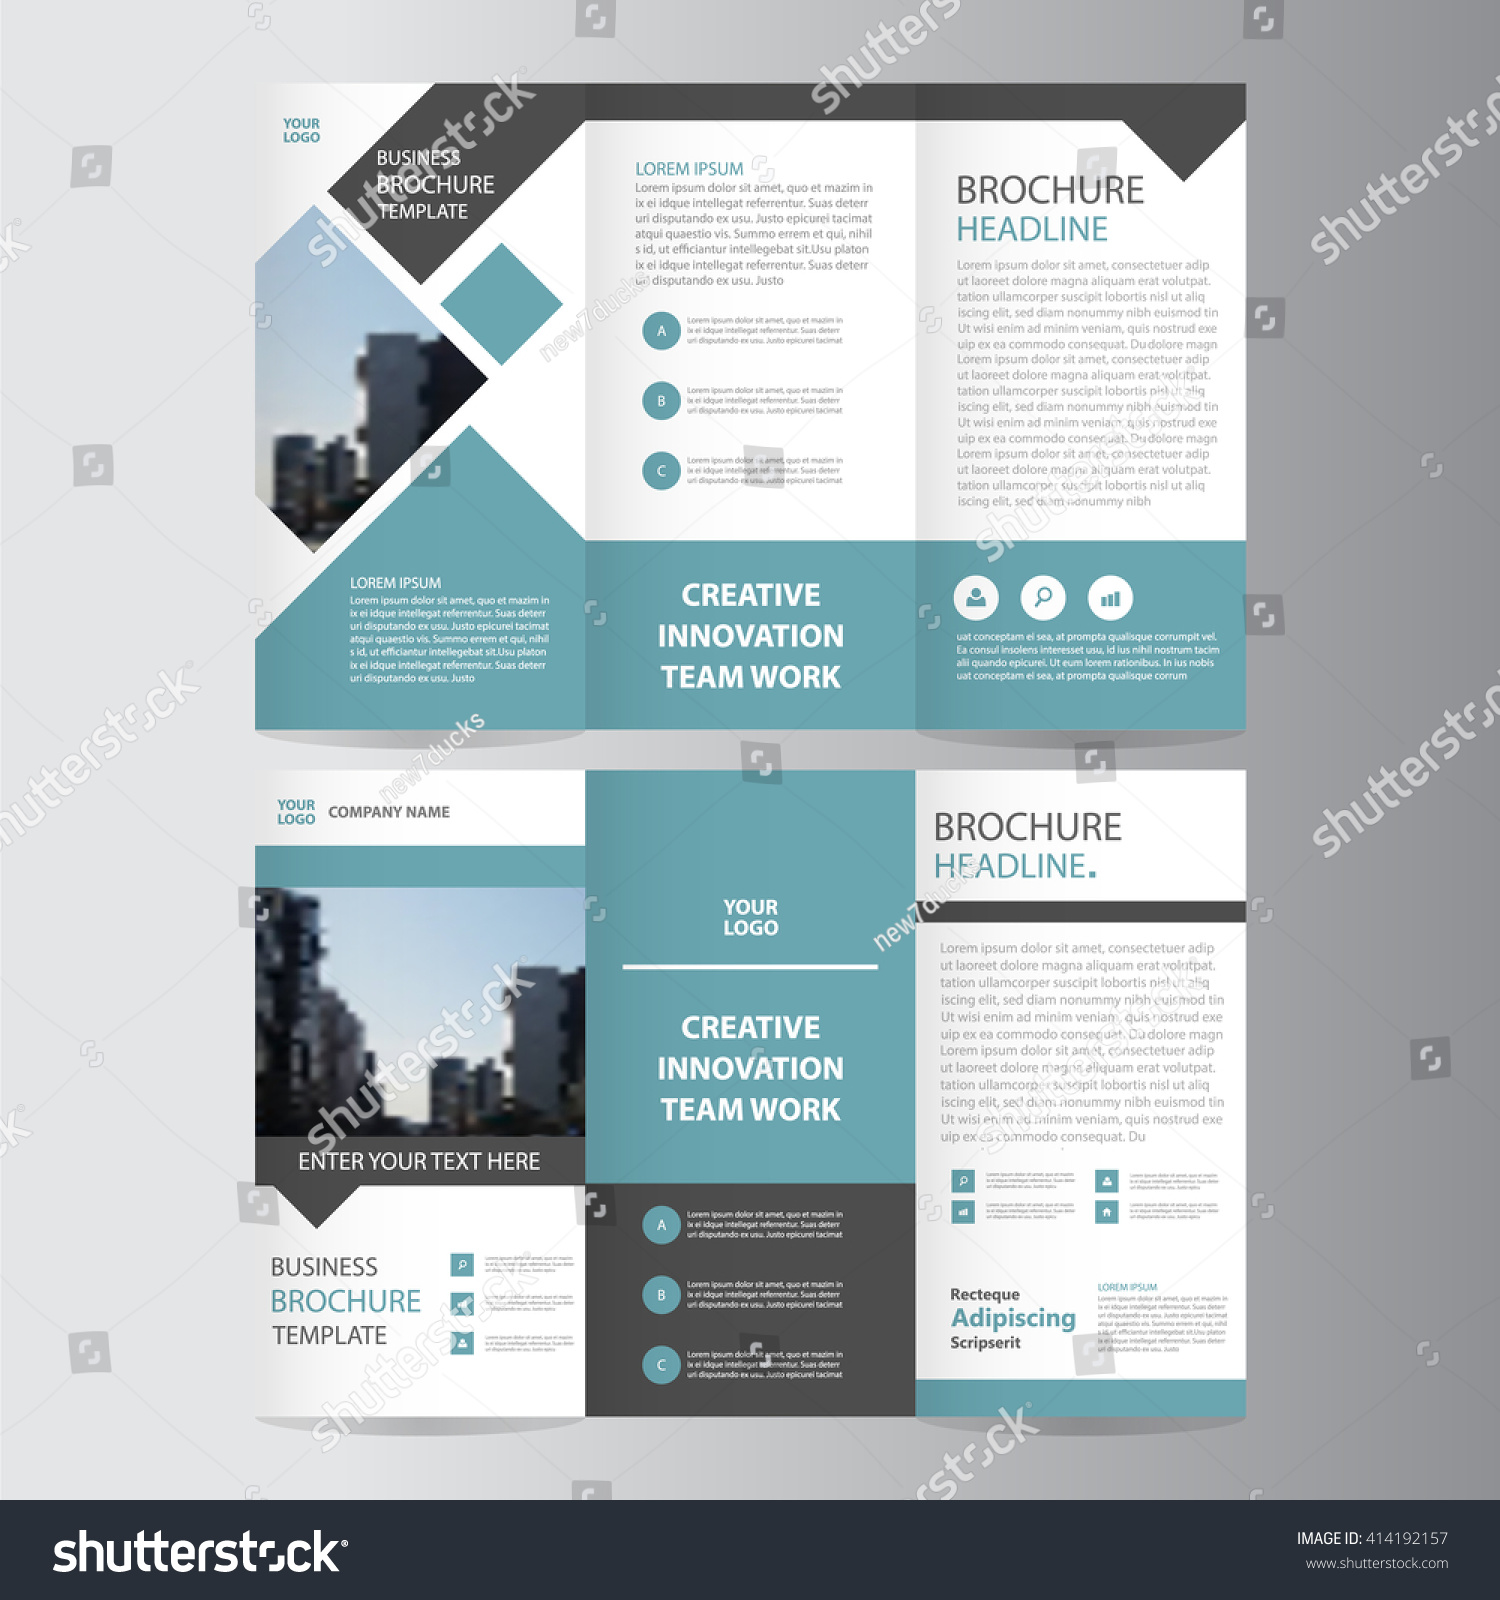 geometric flyer template sample templates geometric shapes activity math and stem ideas for kids